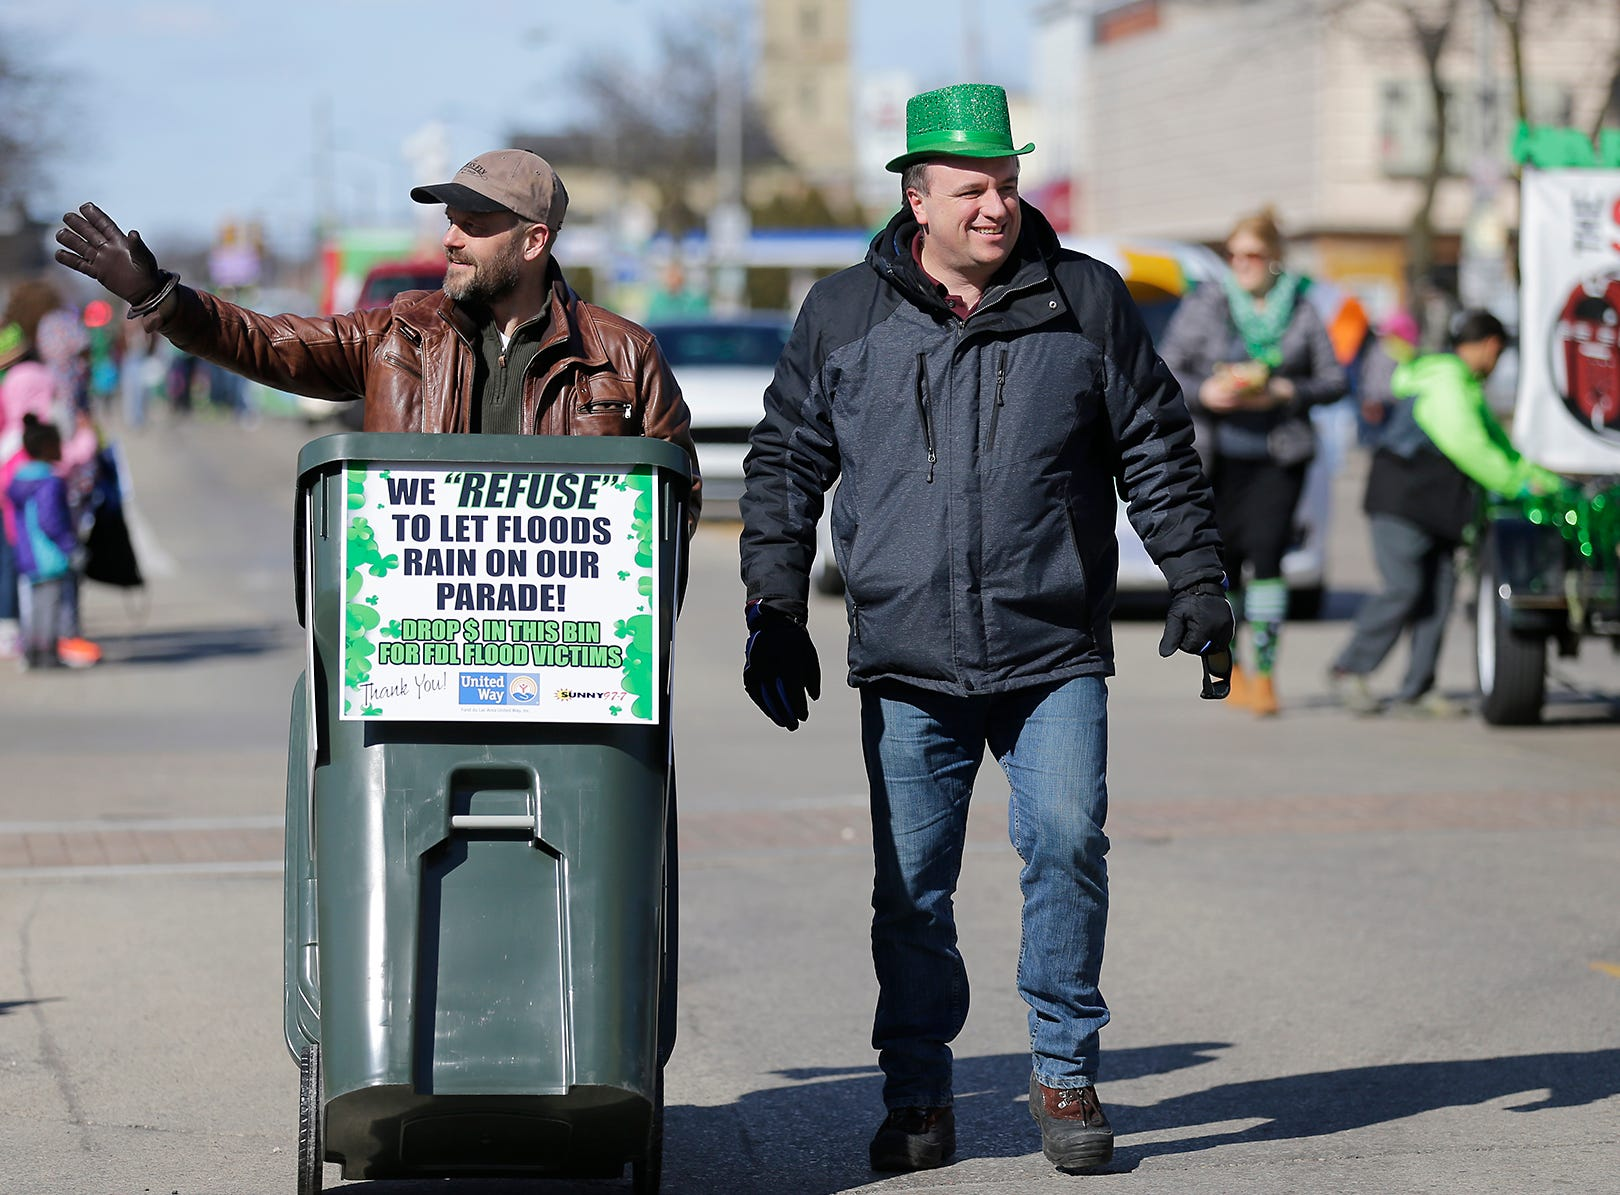 Greg Stensland and Ron Jacobson collect money for flood victims during the City of Fond du Lac St. Patrick's Day Parade Saturday, March 16, 2019 on Main Street in downtown Fond du Lac. Hundreds of people lined the street to watch over 50 parade participants. Doug Raflik/USA TODAY NETWORK-Wisconsin